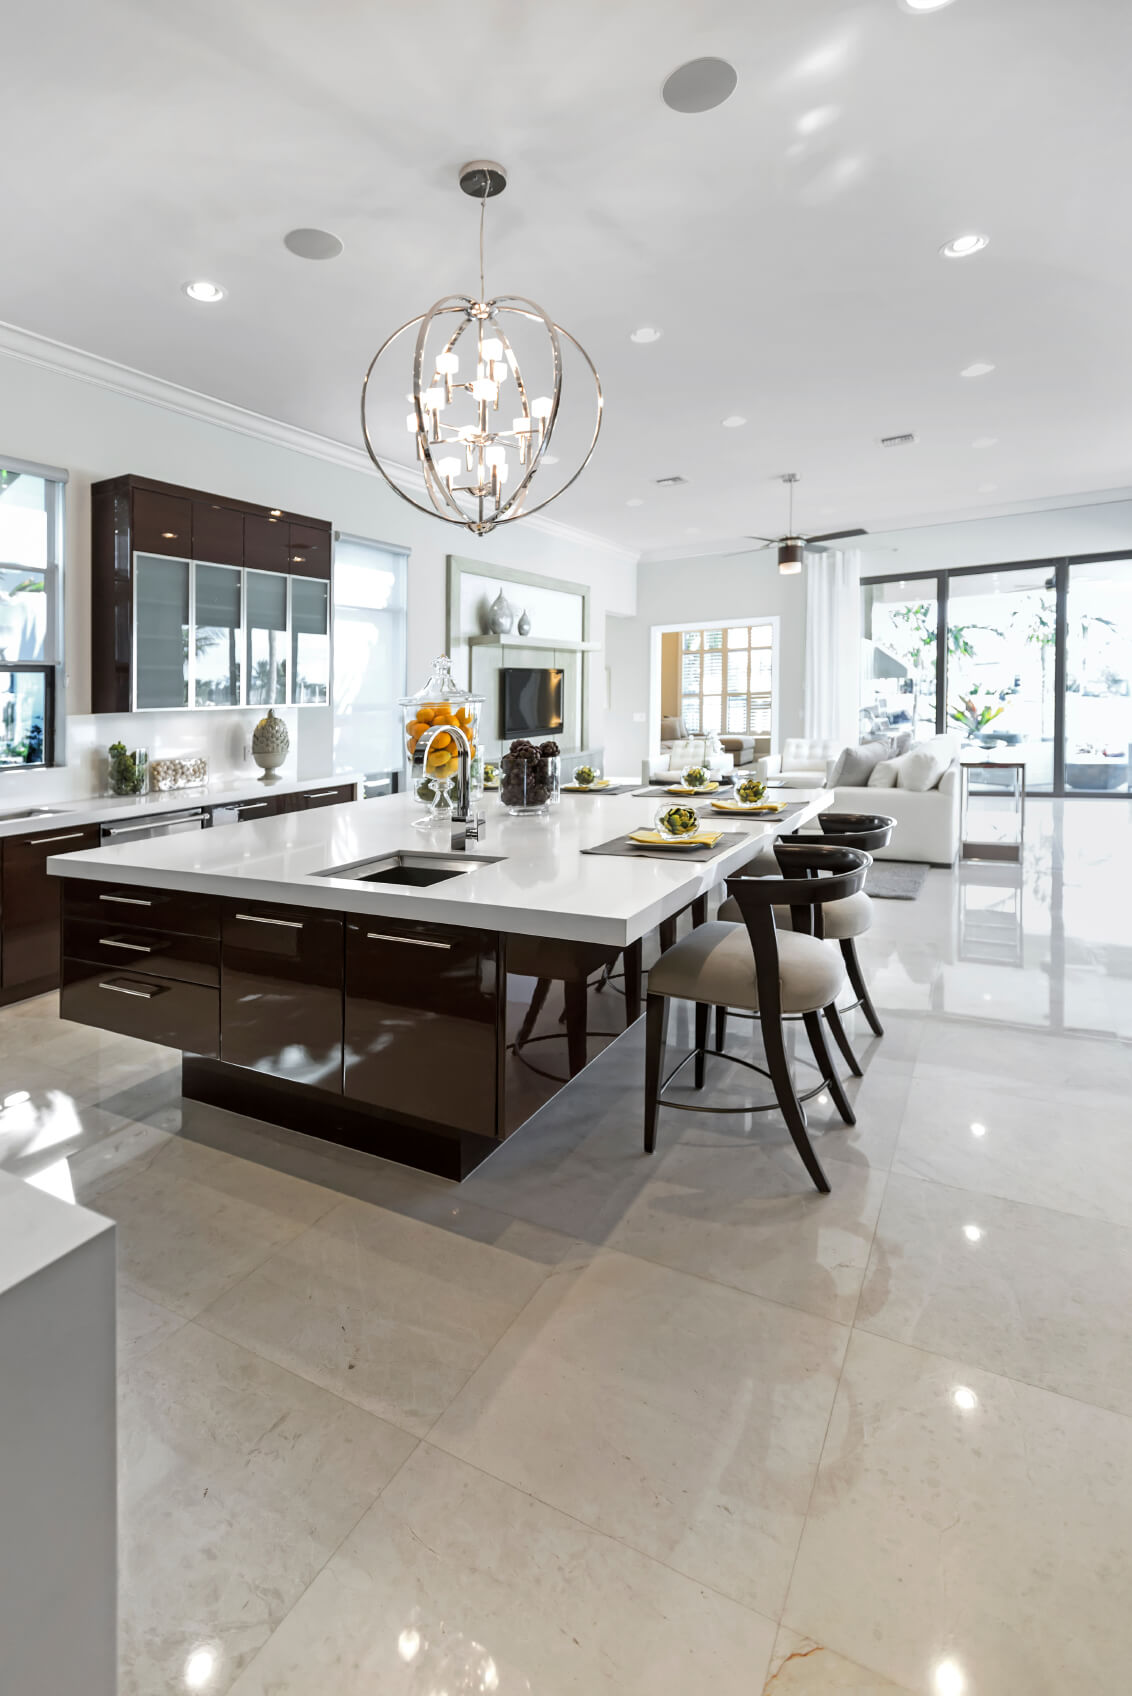 Kitchen island custom designs - Large Modern White And Dark Brown Kitchen With Huge Modern Island With Breakfast Bar